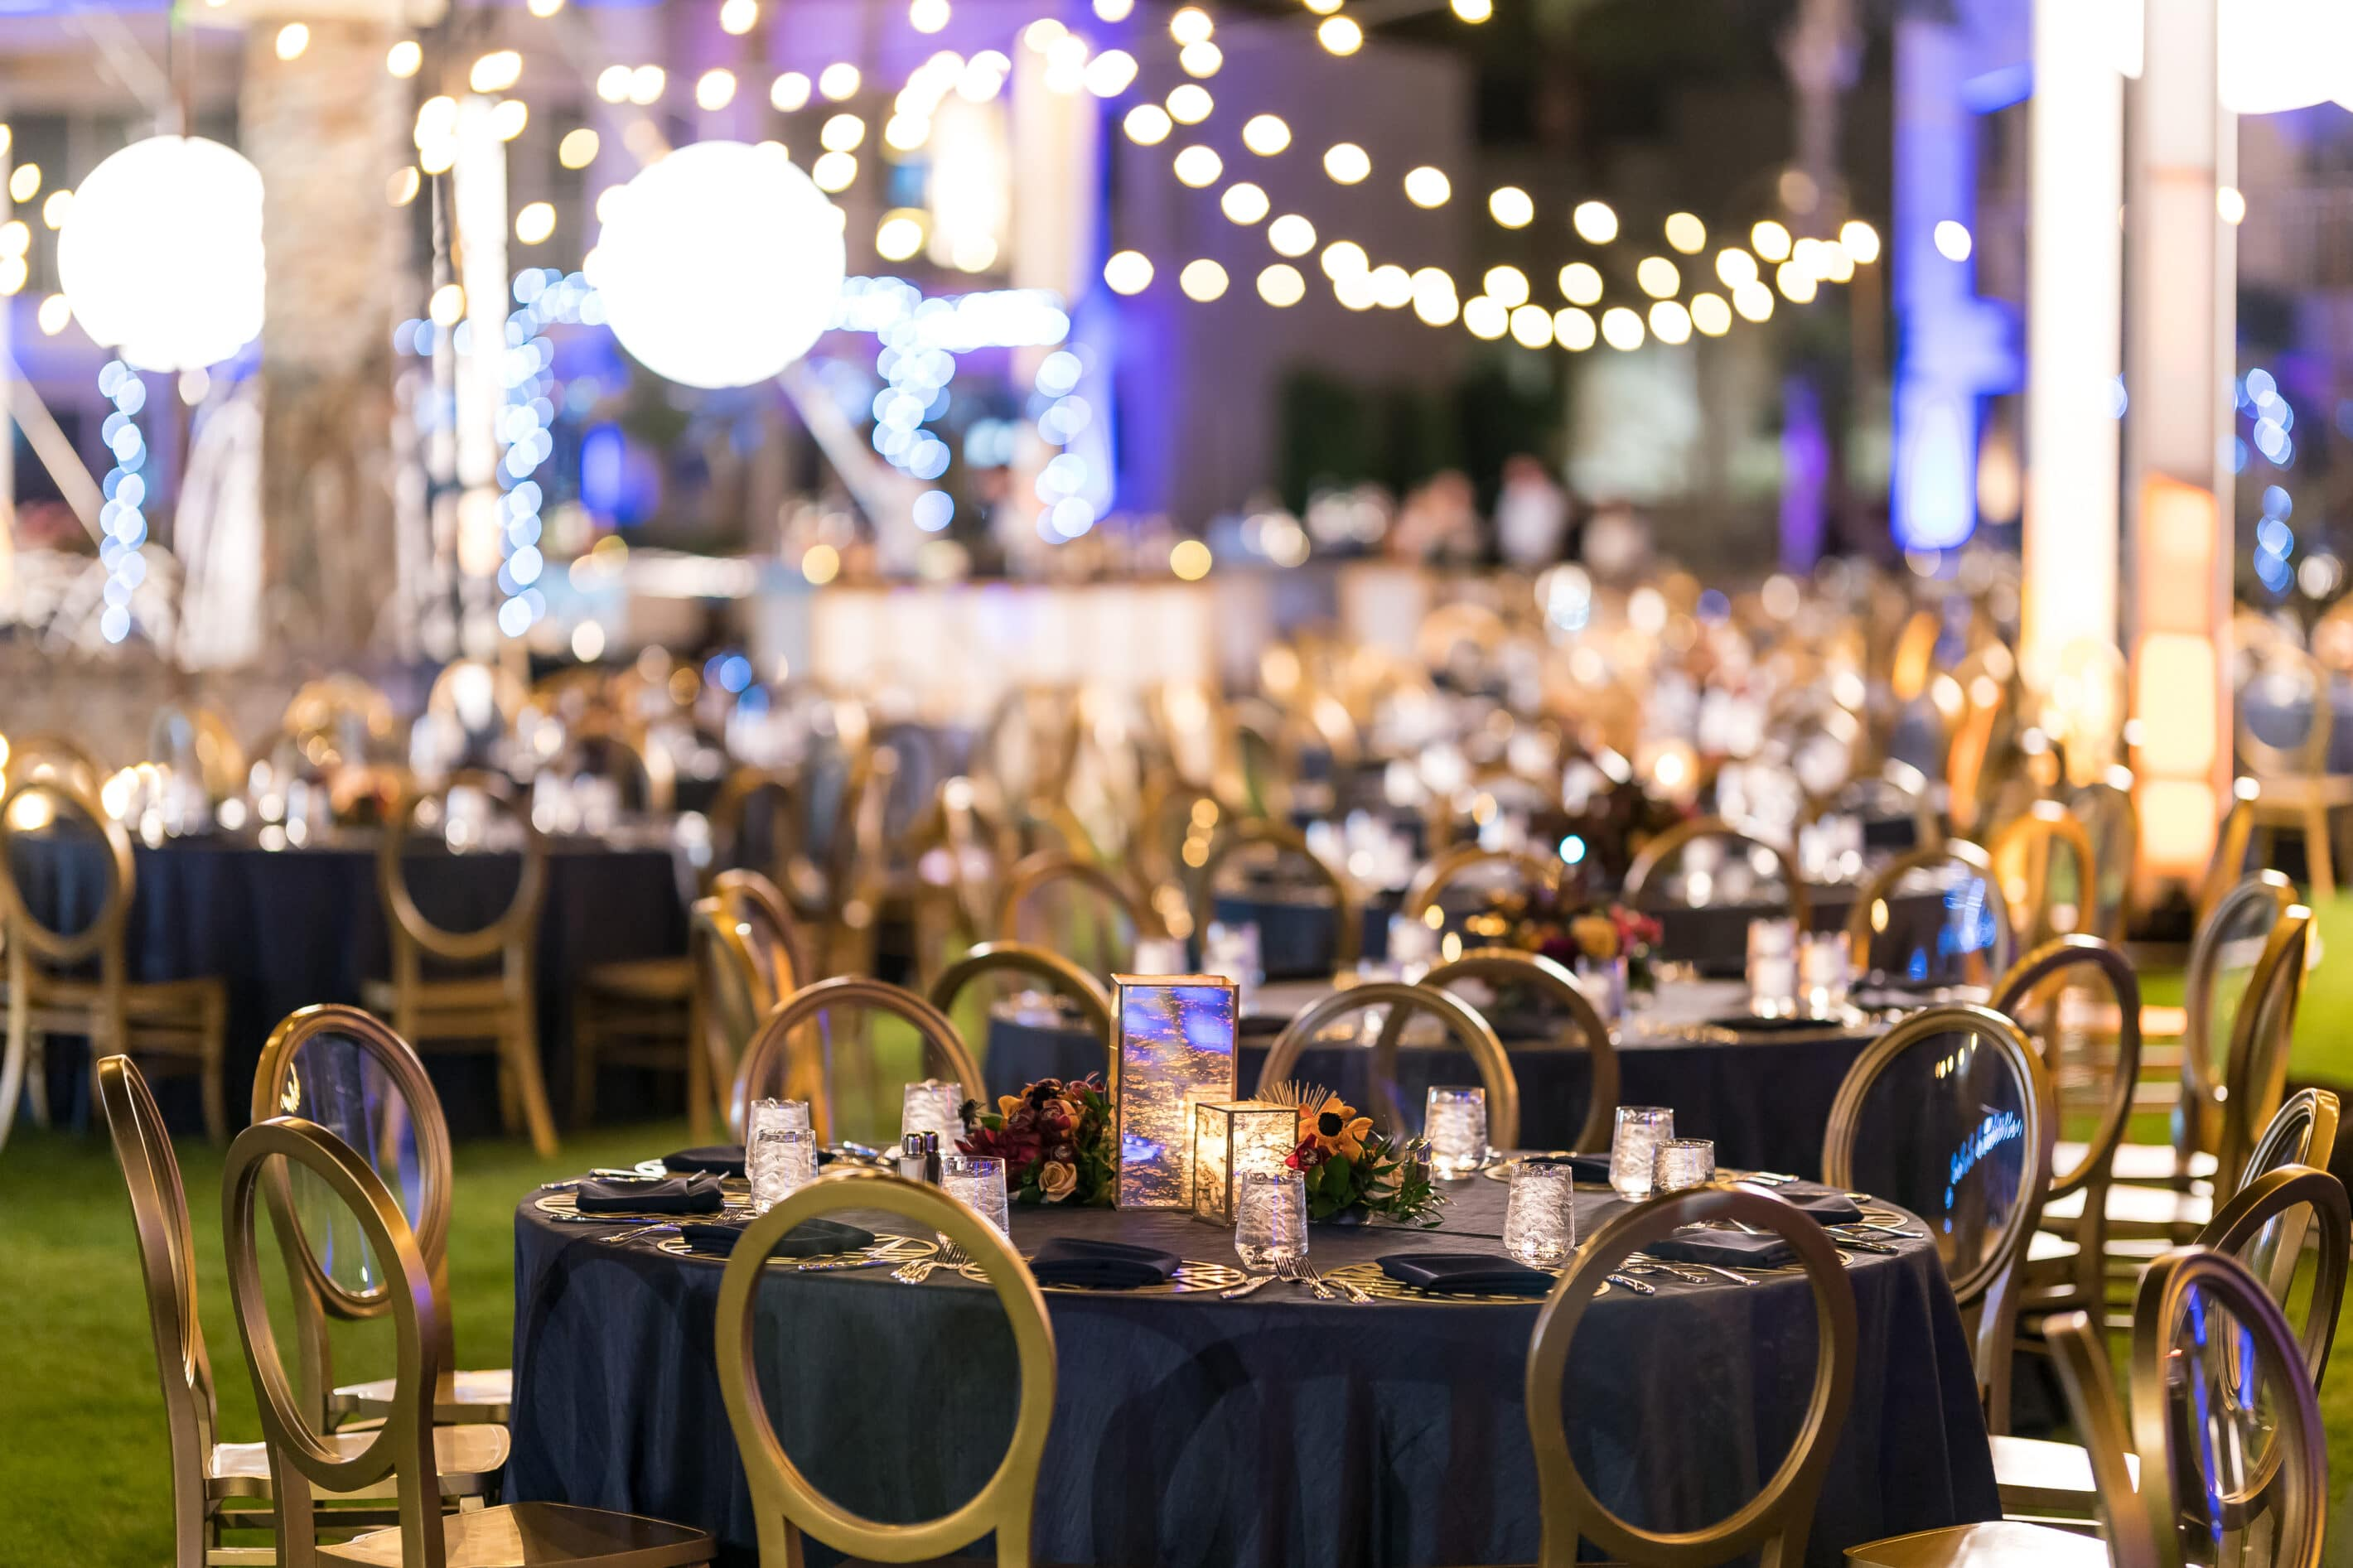 Elegant corporate dining dinner event for indoor or outdoor space at a Scottsdale resort or venue. Dining under the stars with blue and gold tones, bistro lighting and candle light.